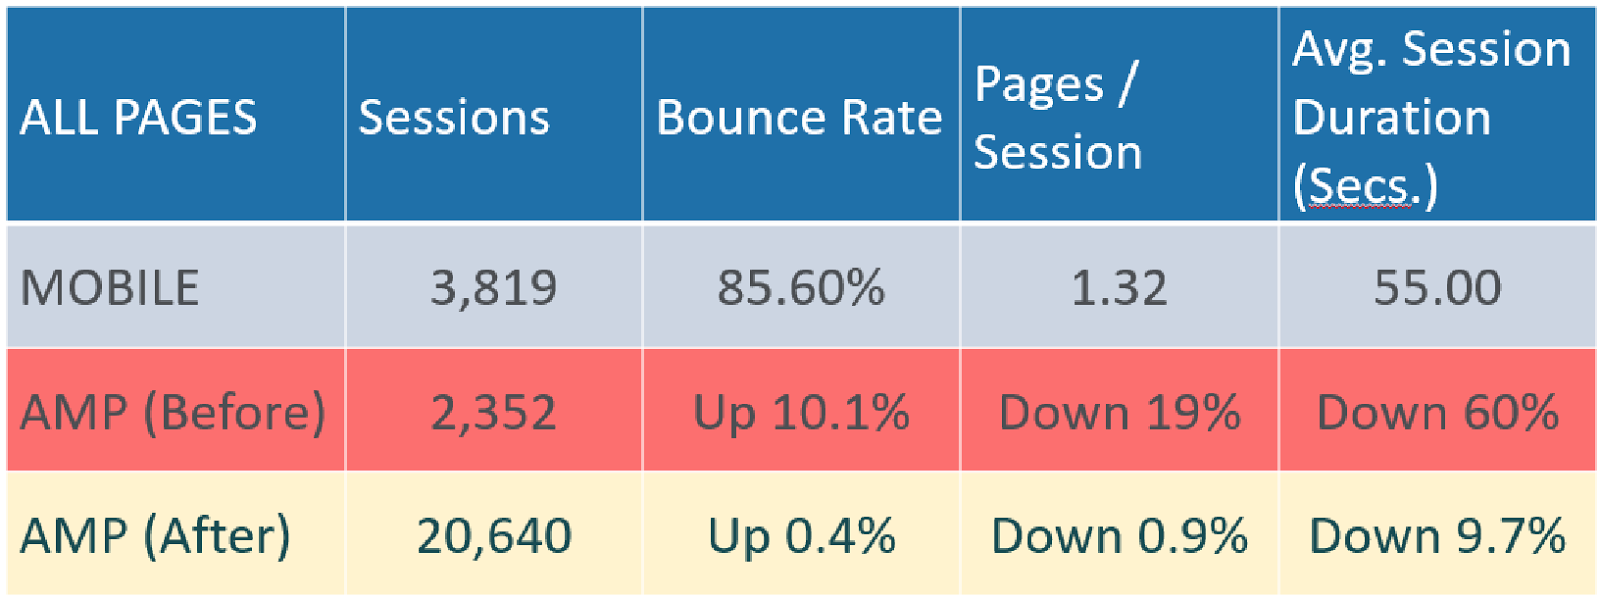 AMP SEO - Should you AMP-lify your site in 2018? - Moz